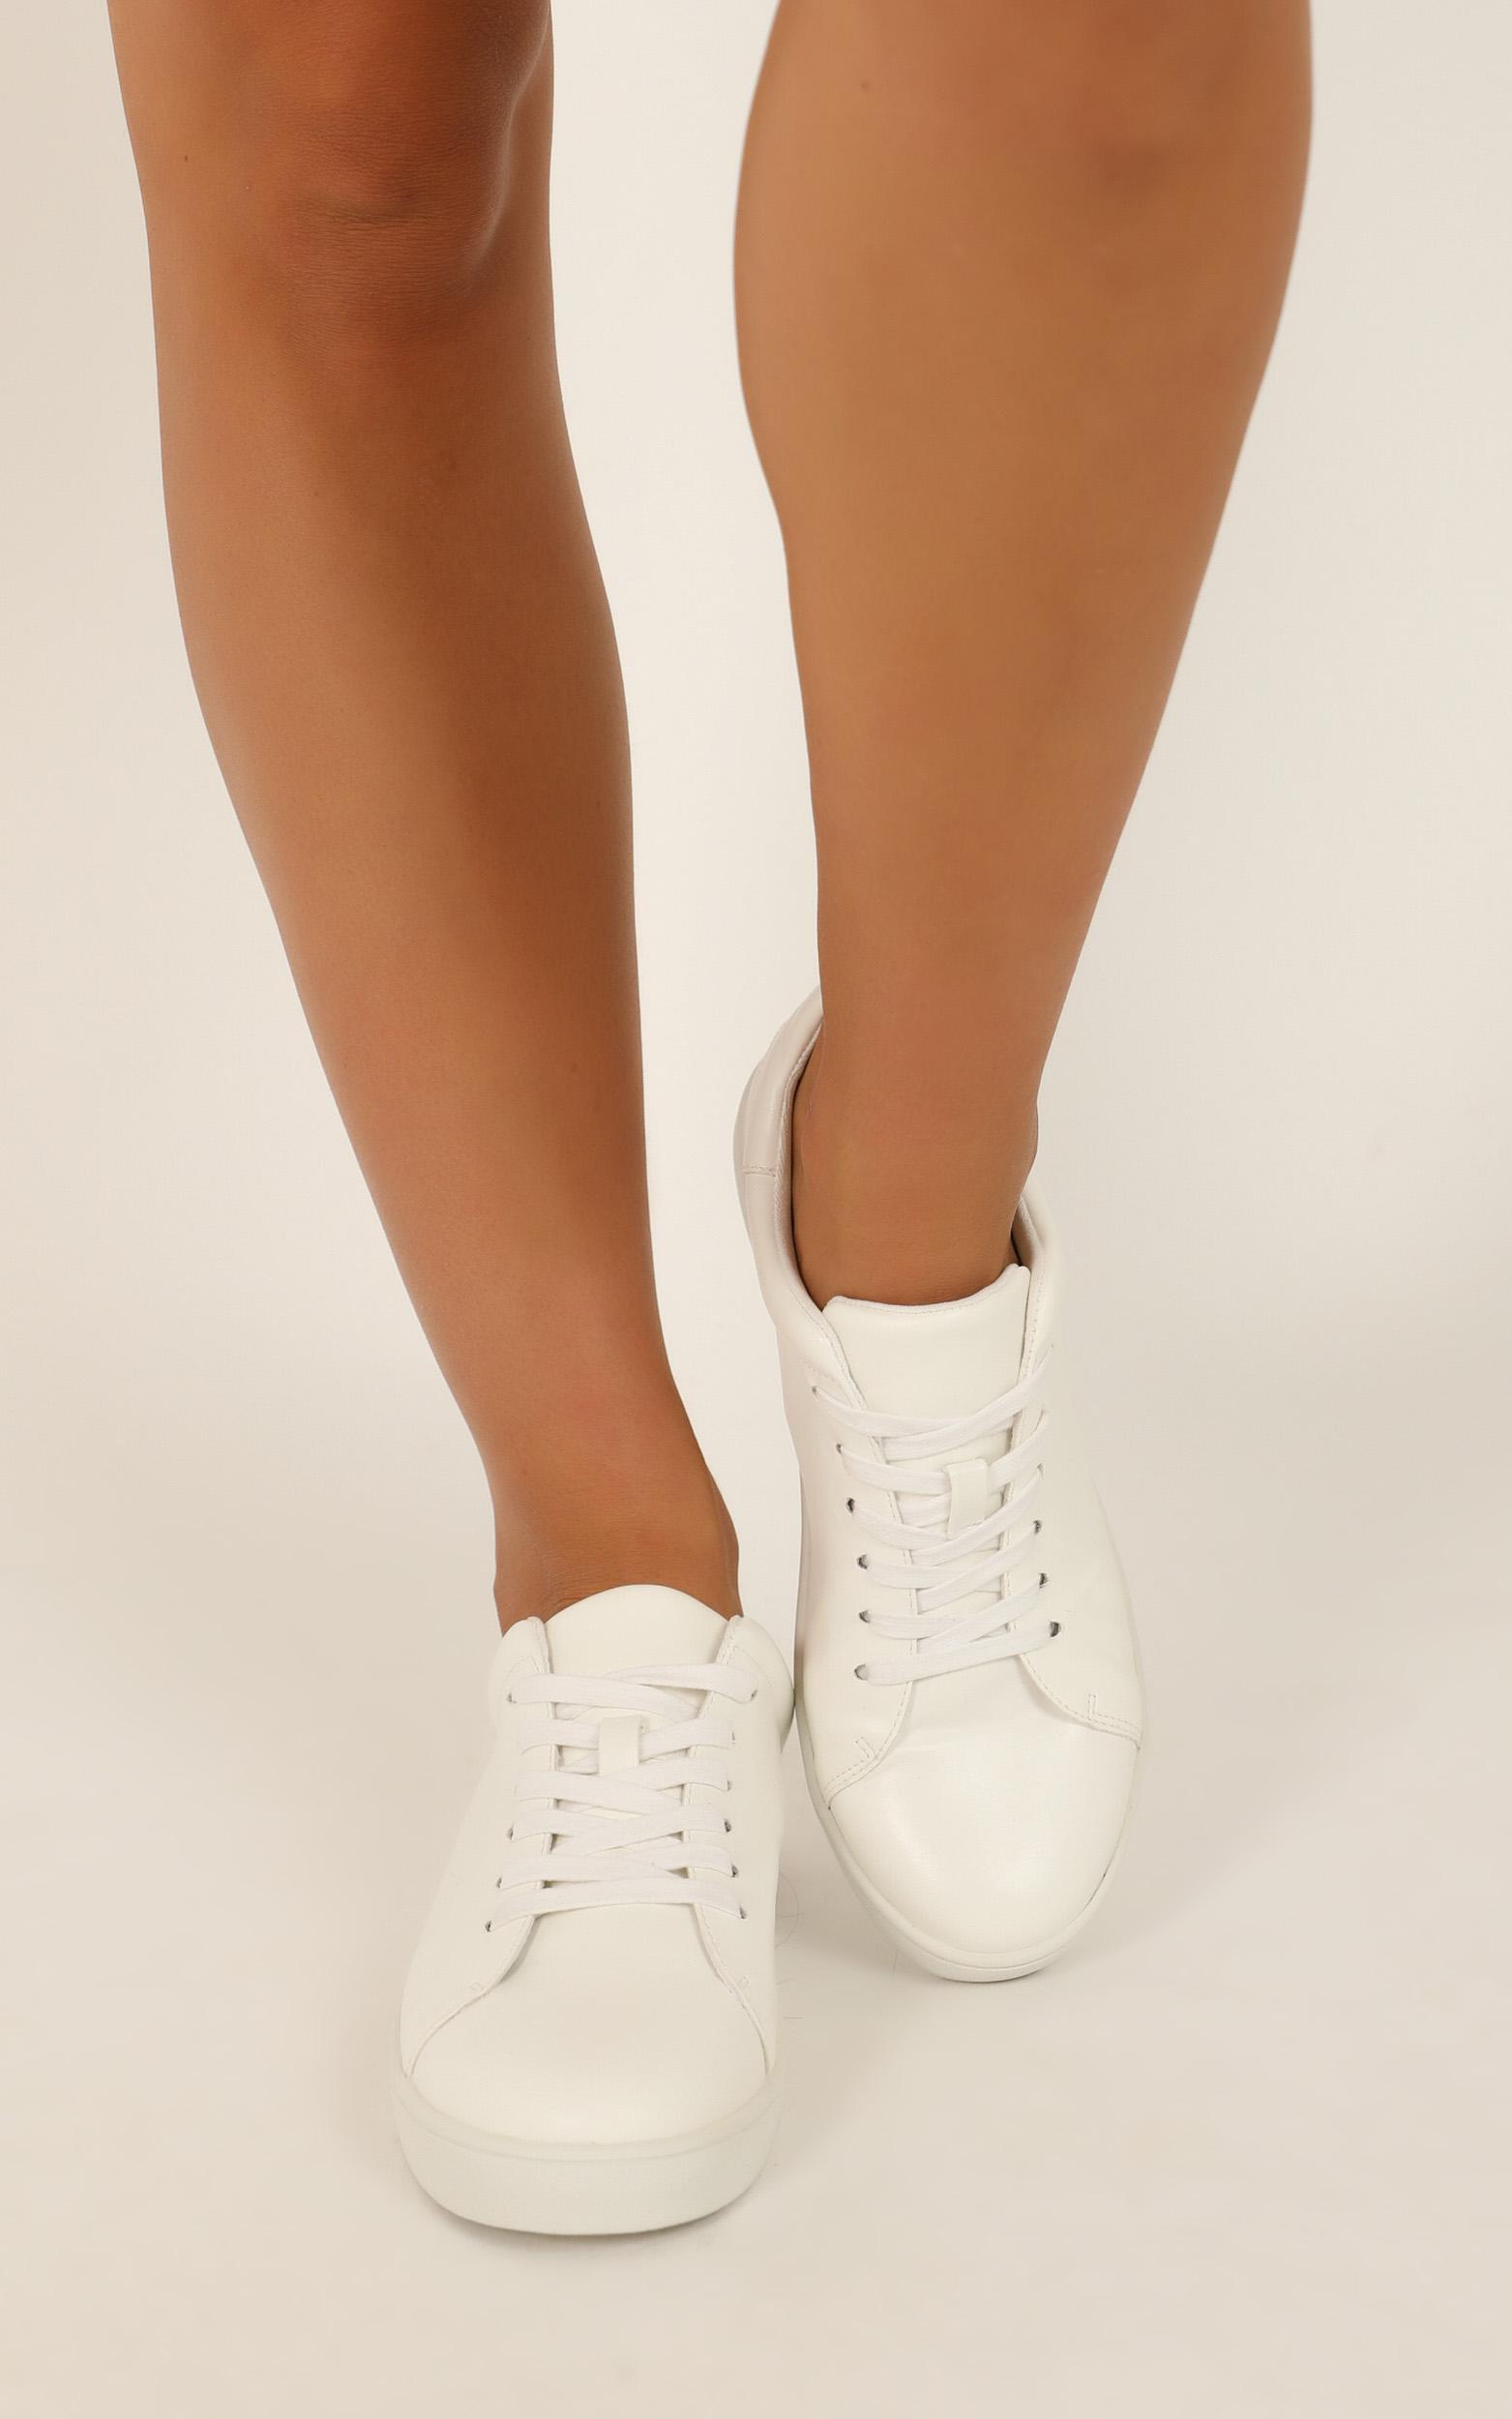 Verali - Wreckless sneakers in white smooth  - 10, White, hi-res image number null